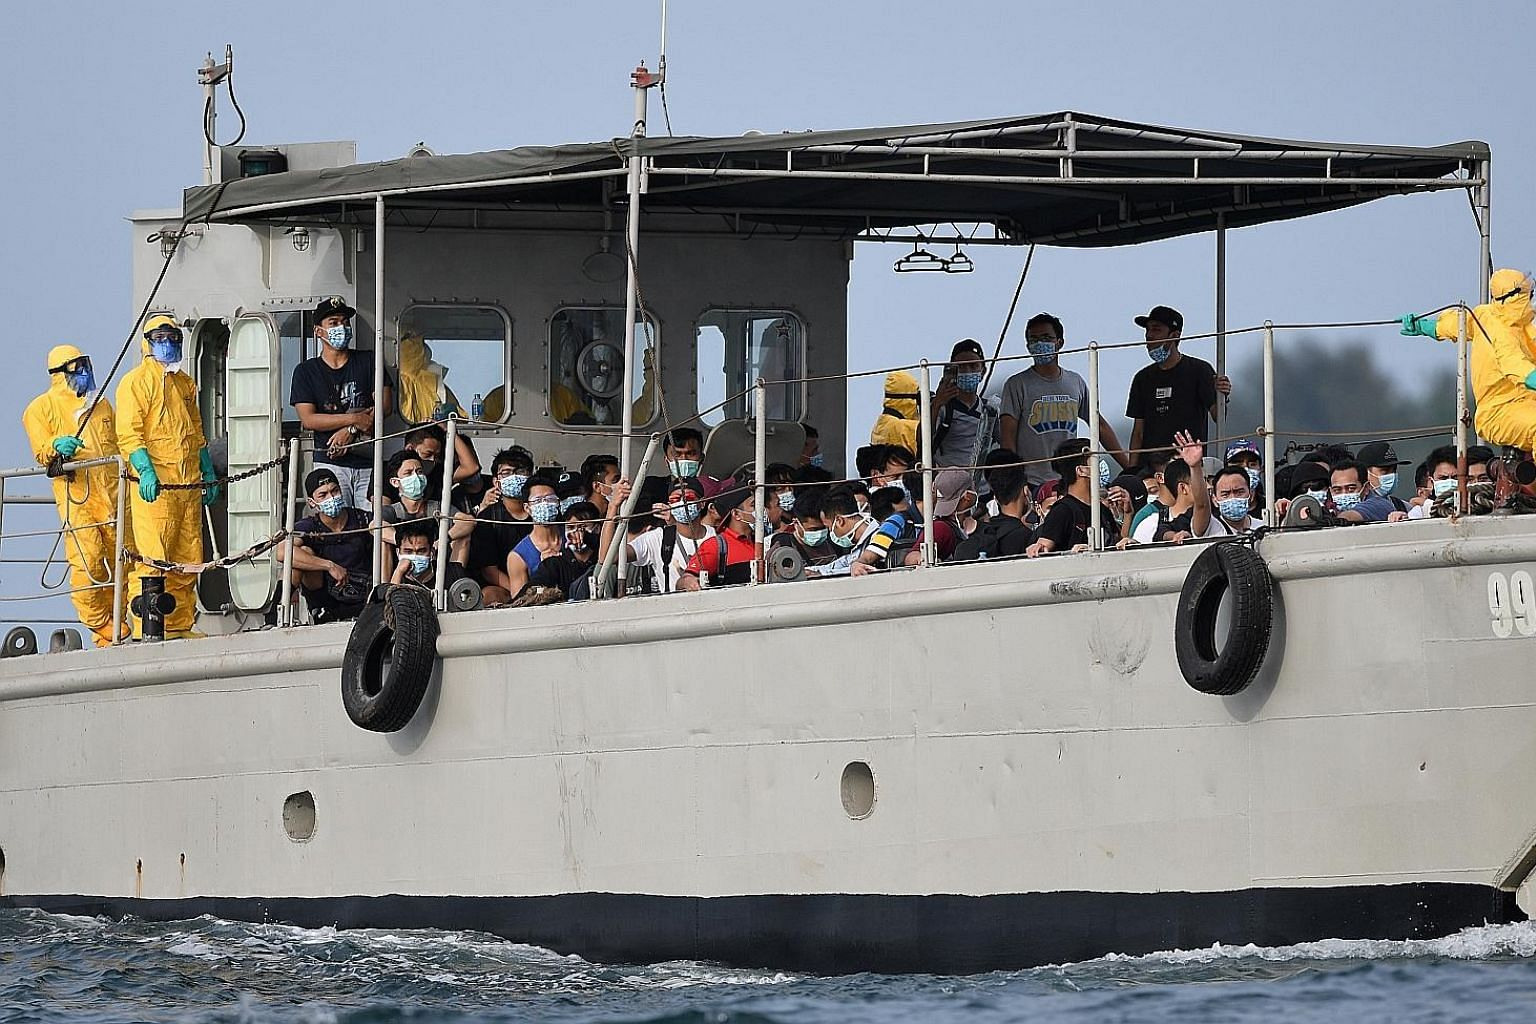 Indonesian nationals being transported to Sebaru Kecil Islands, north of Jakarta's coast, for observation last Saturday after being evacuated from the World Dream cruise liner. They were crew members of the ship, which carried three Chinese nationals